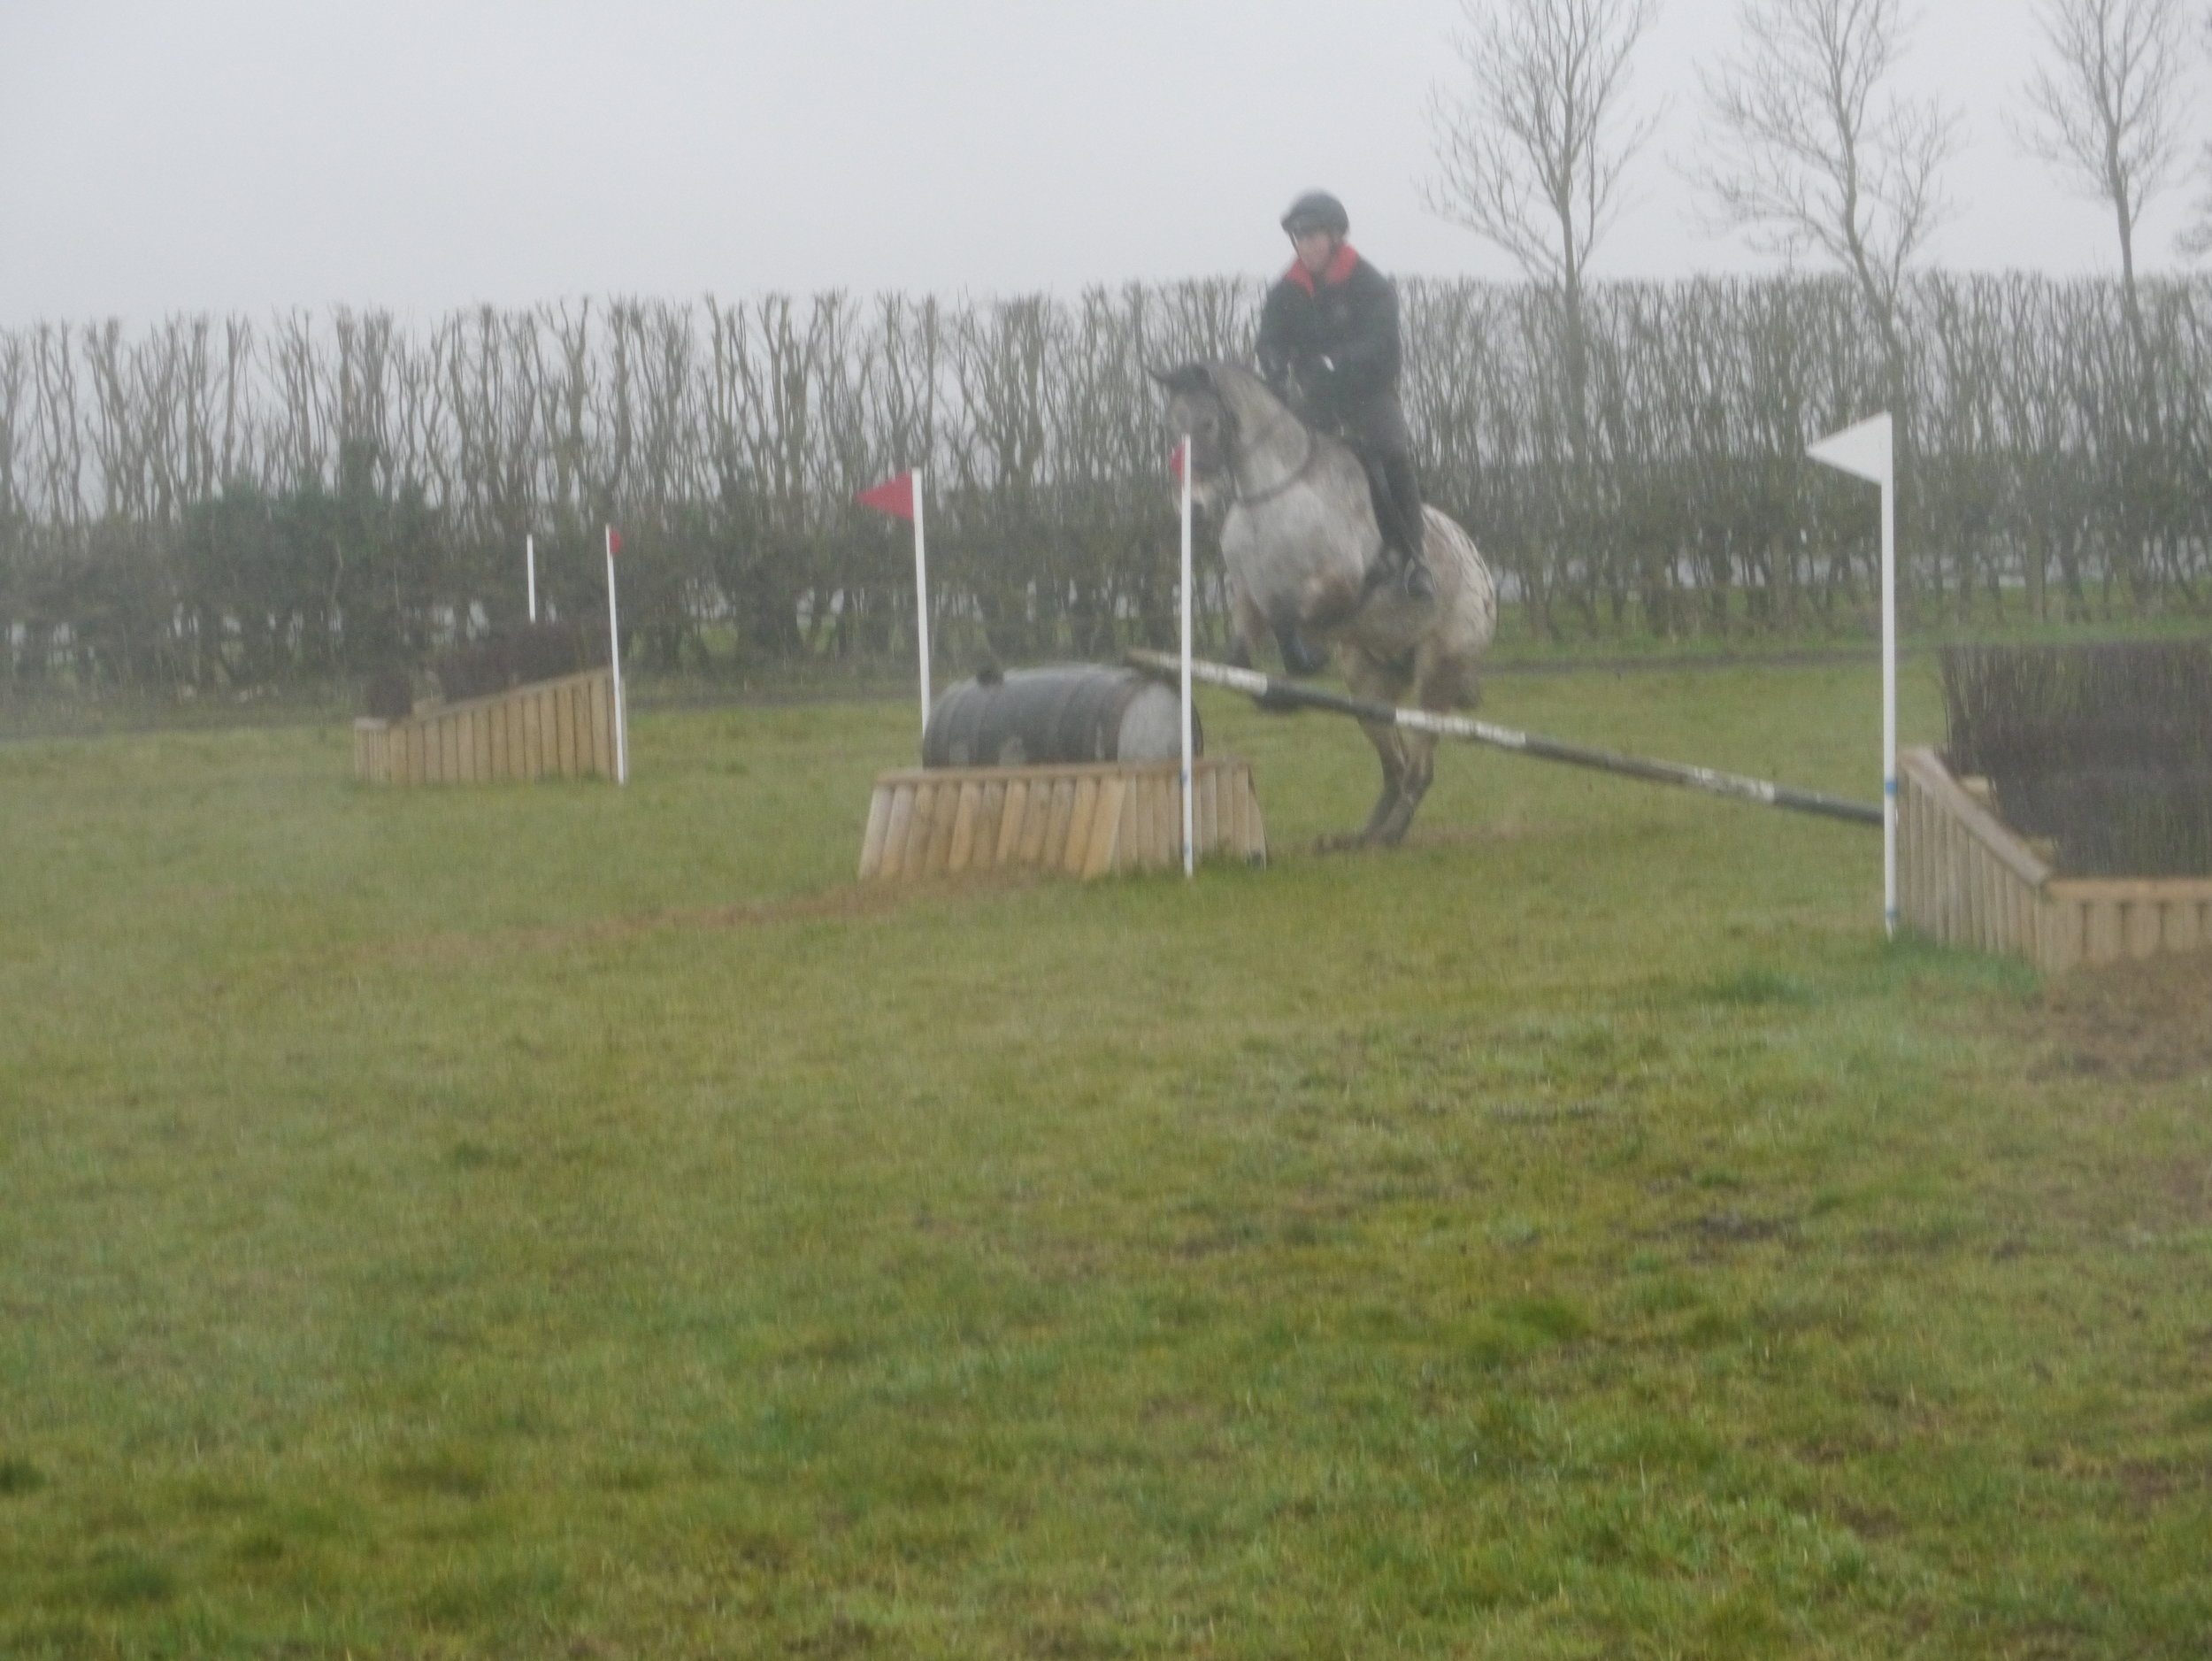 Excellent XC training with Richard Jones 3 March 2019 - Alice Turner and Indi negotiating a skinny fence in rather wet and windy conditions!